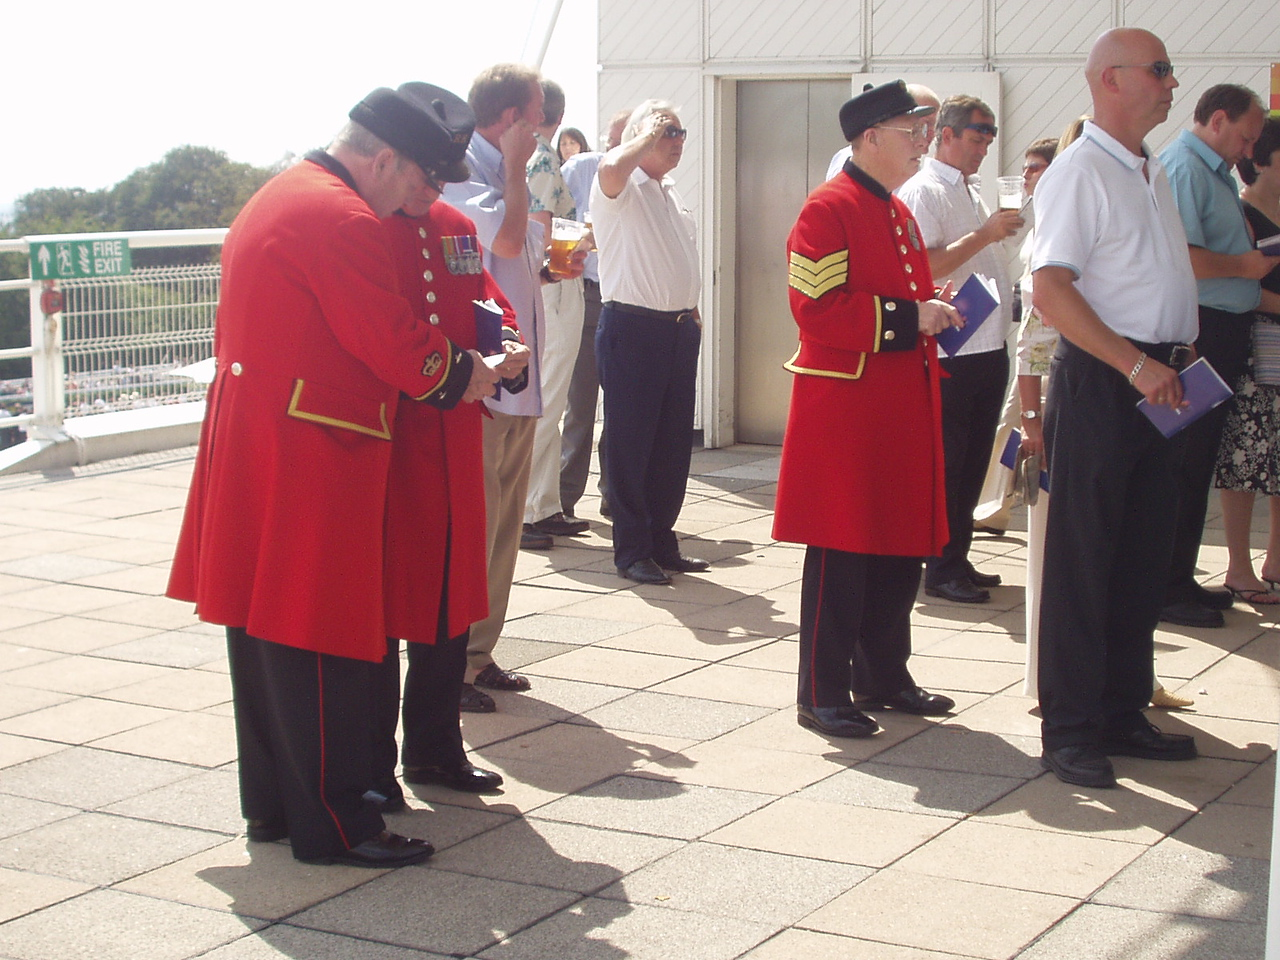 Chelsea pensioners at the Tote